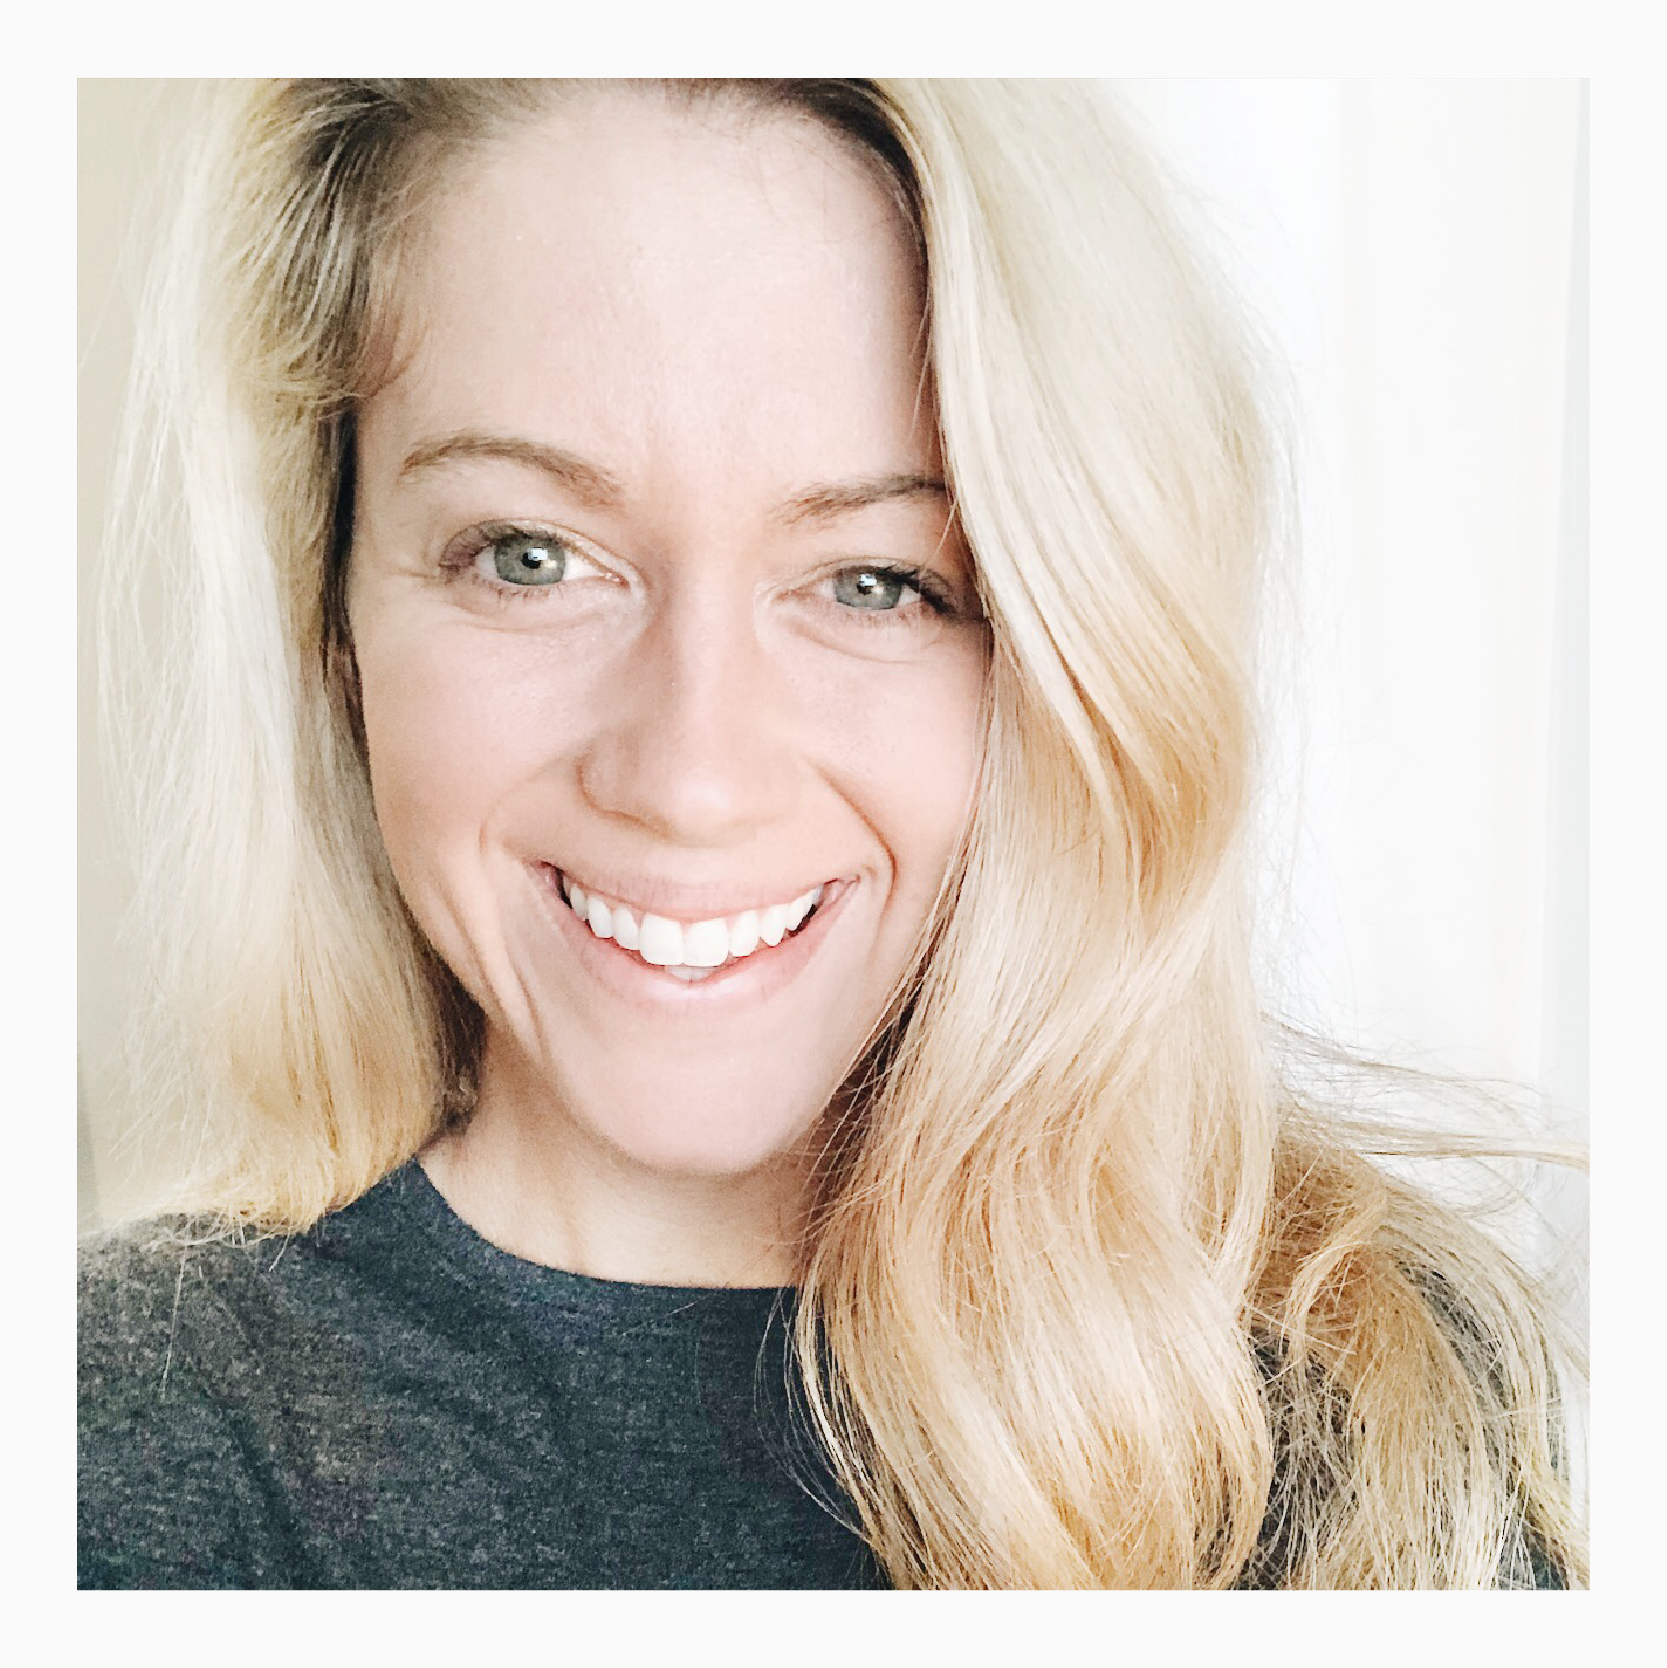 Emma Rose Company is a Squarespace website designer and photographer who primarily works with photographers to help them reach their business goals through thoughtful design..png